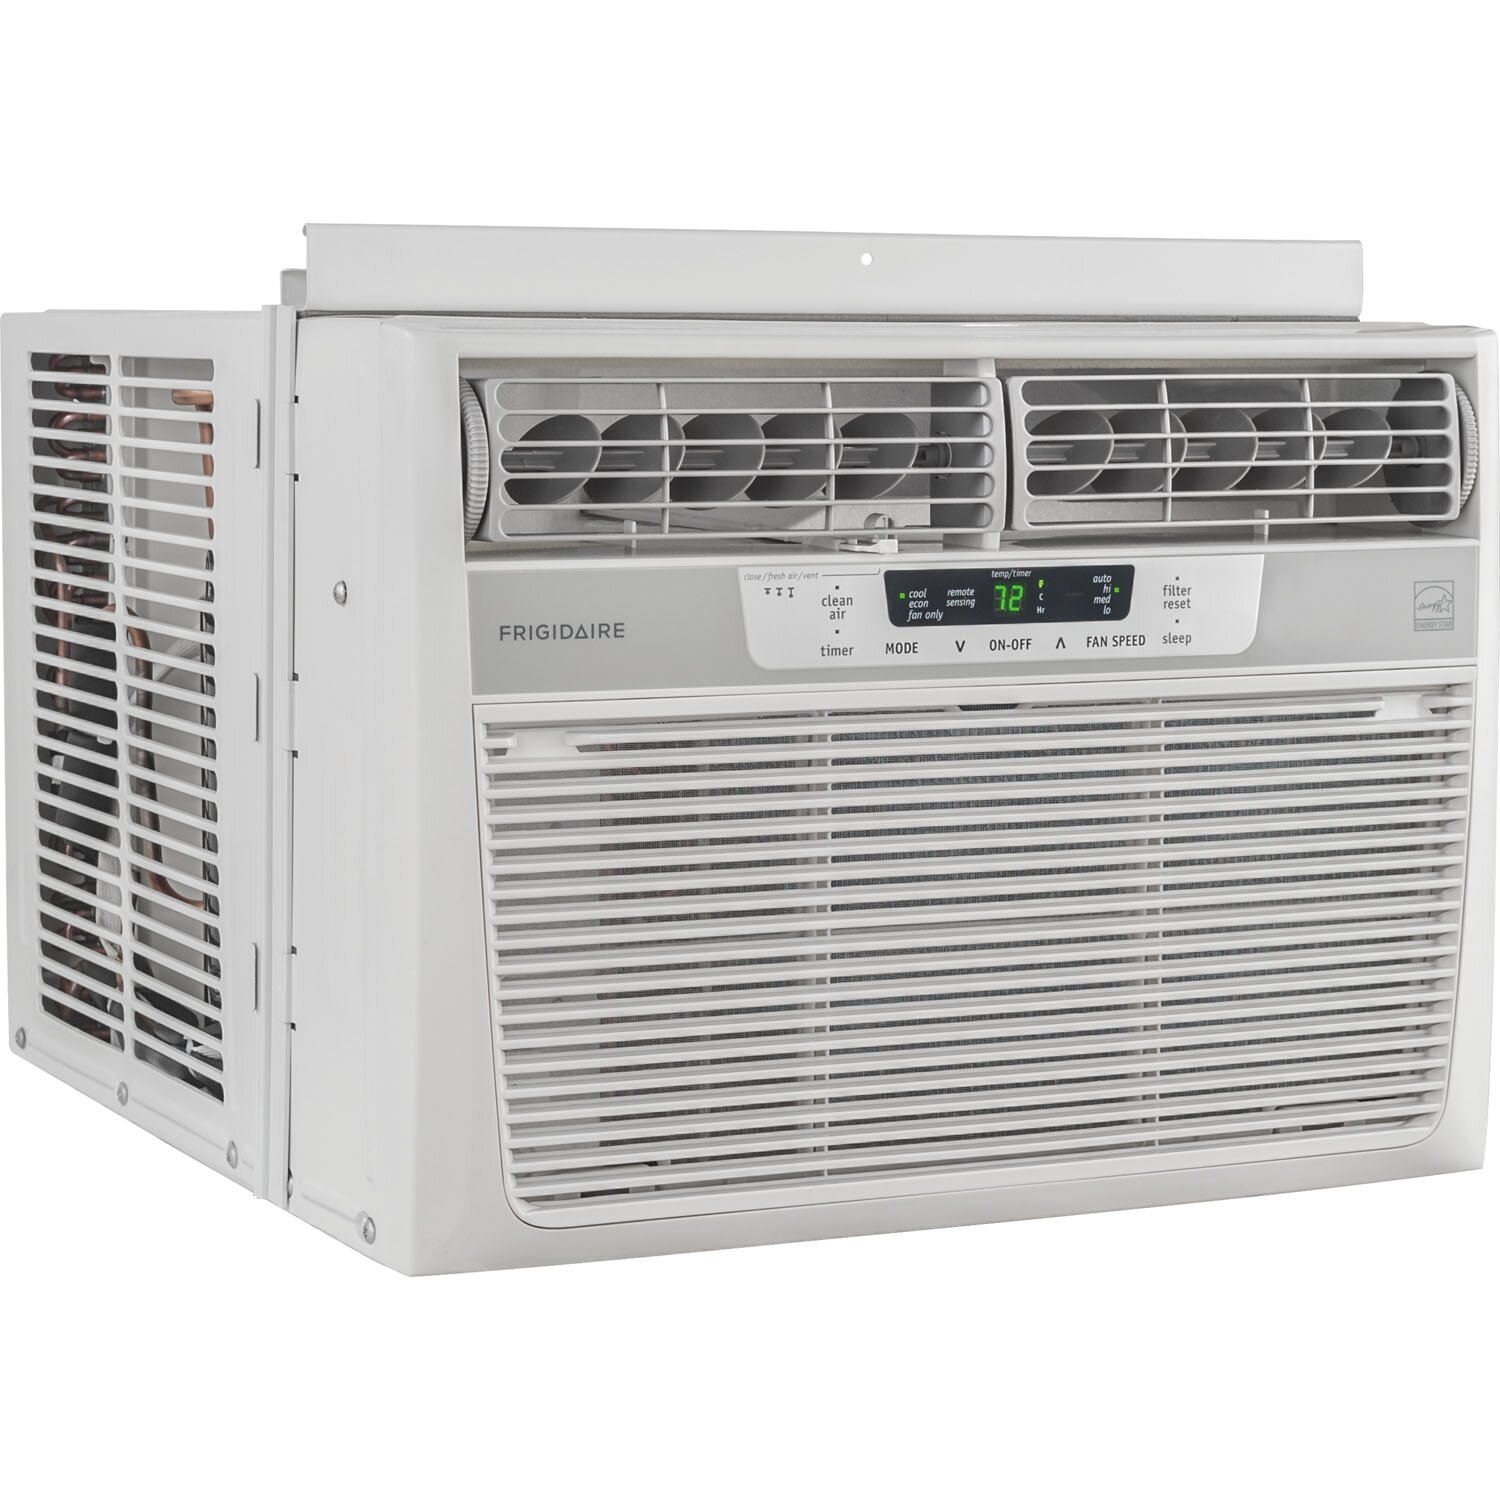 #417737 Frigidaire 10 000 BTU Energy Star Window Compact Air  Brand New 10241 Air Conditioner Energy Star images with 1500x1500 px on helpvideos.info - Air Conditioners, Air Coolers and more